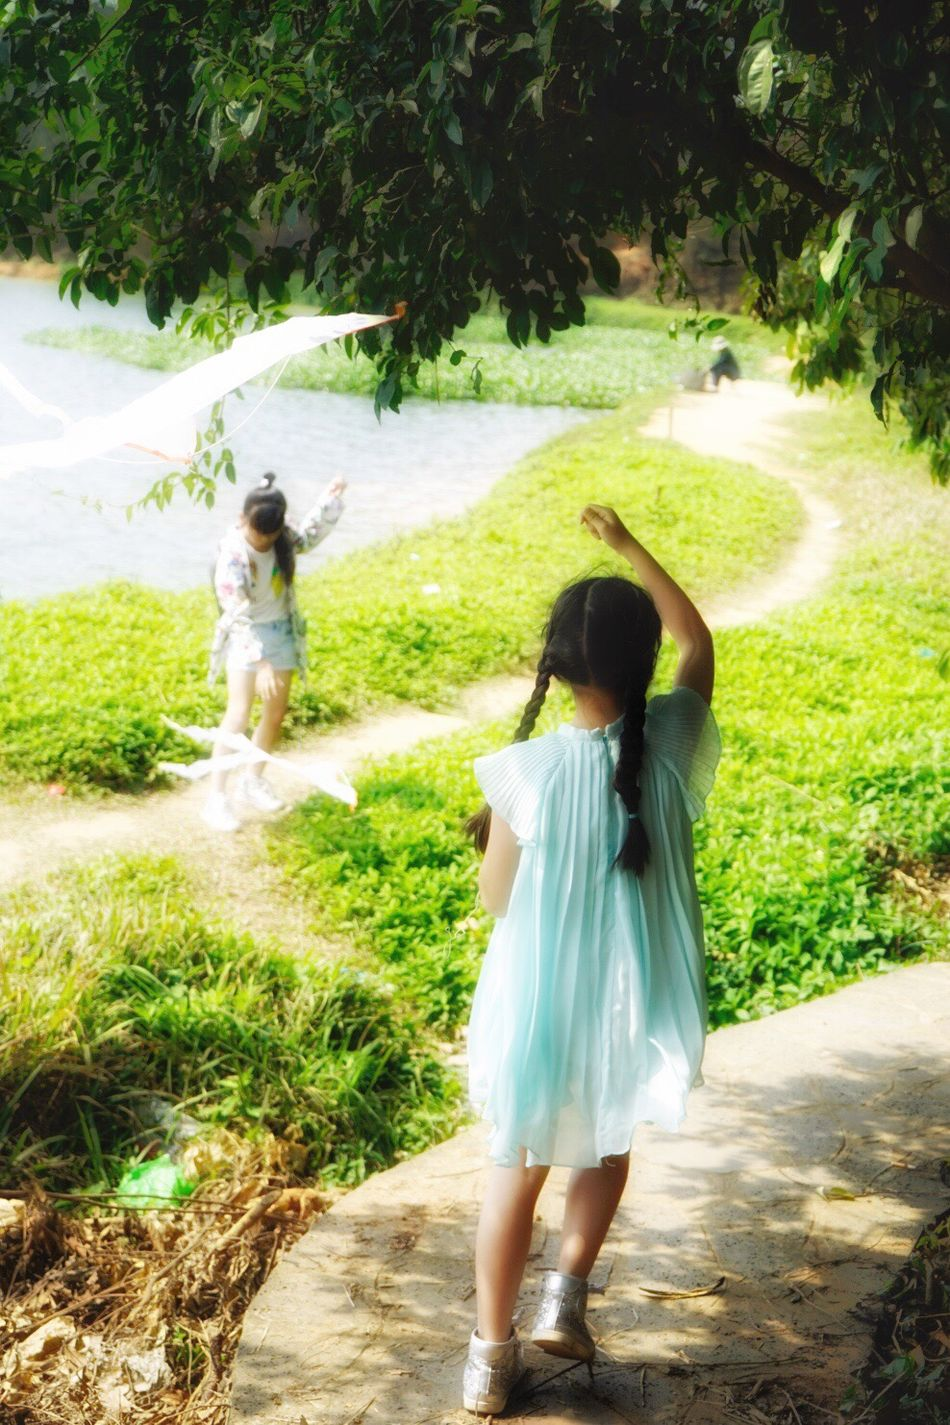 My little fairies❤️ Full Length Two People Rear View Grass Outdoors Childhood Togetherness Tree Bonding Nature Young Women Wedding Dress People Adult Bridegroom Countryside Flying A Kite Girls Nature Happiness